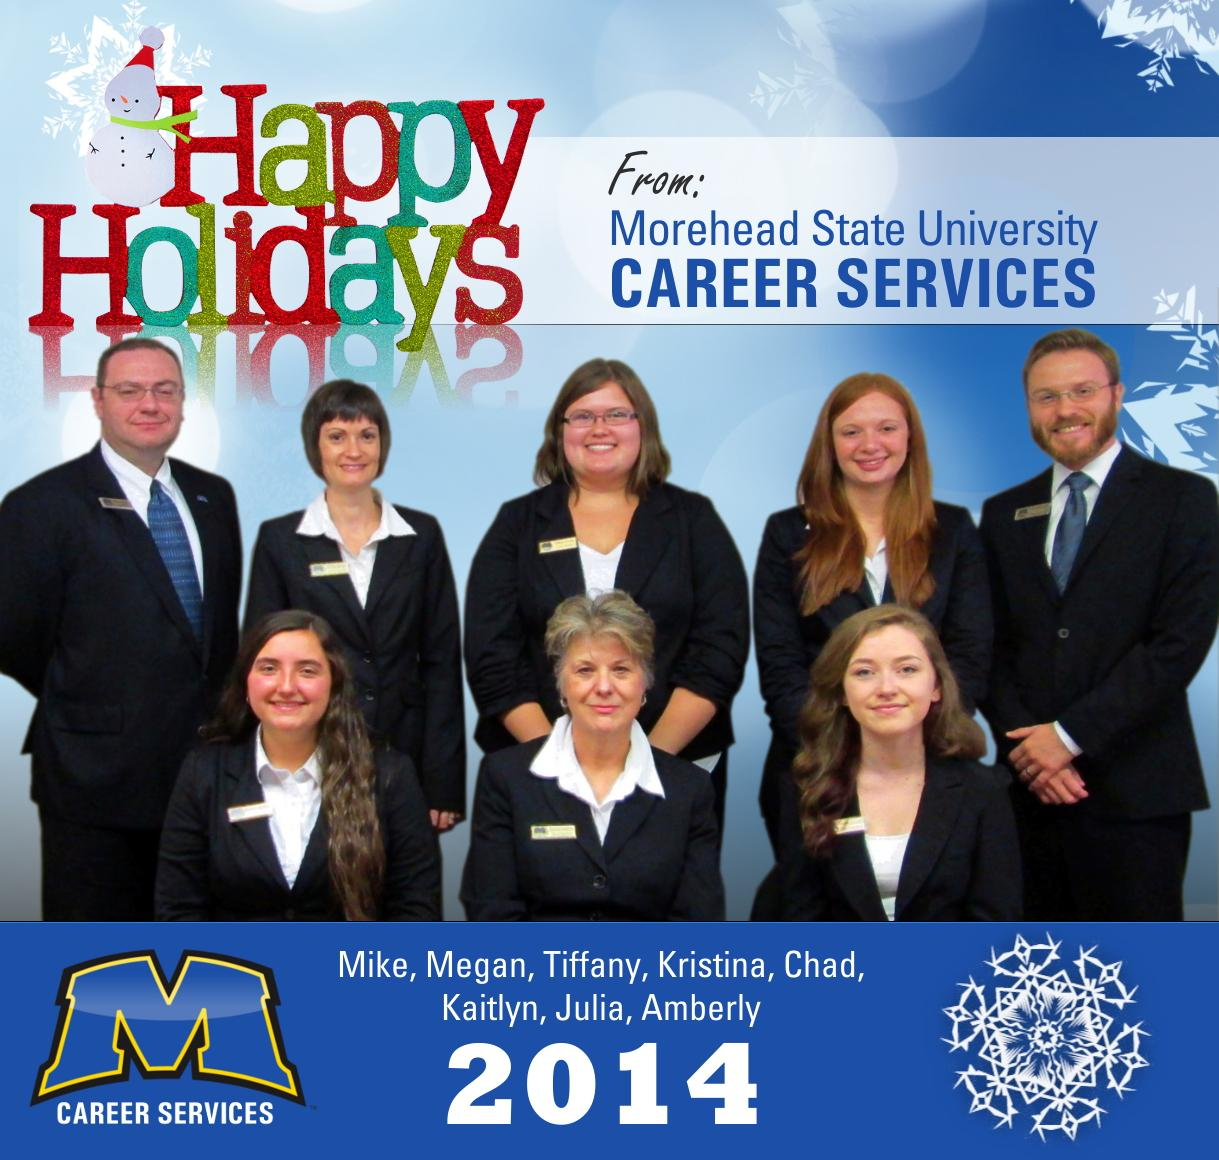 Happy Holidays from Career Services